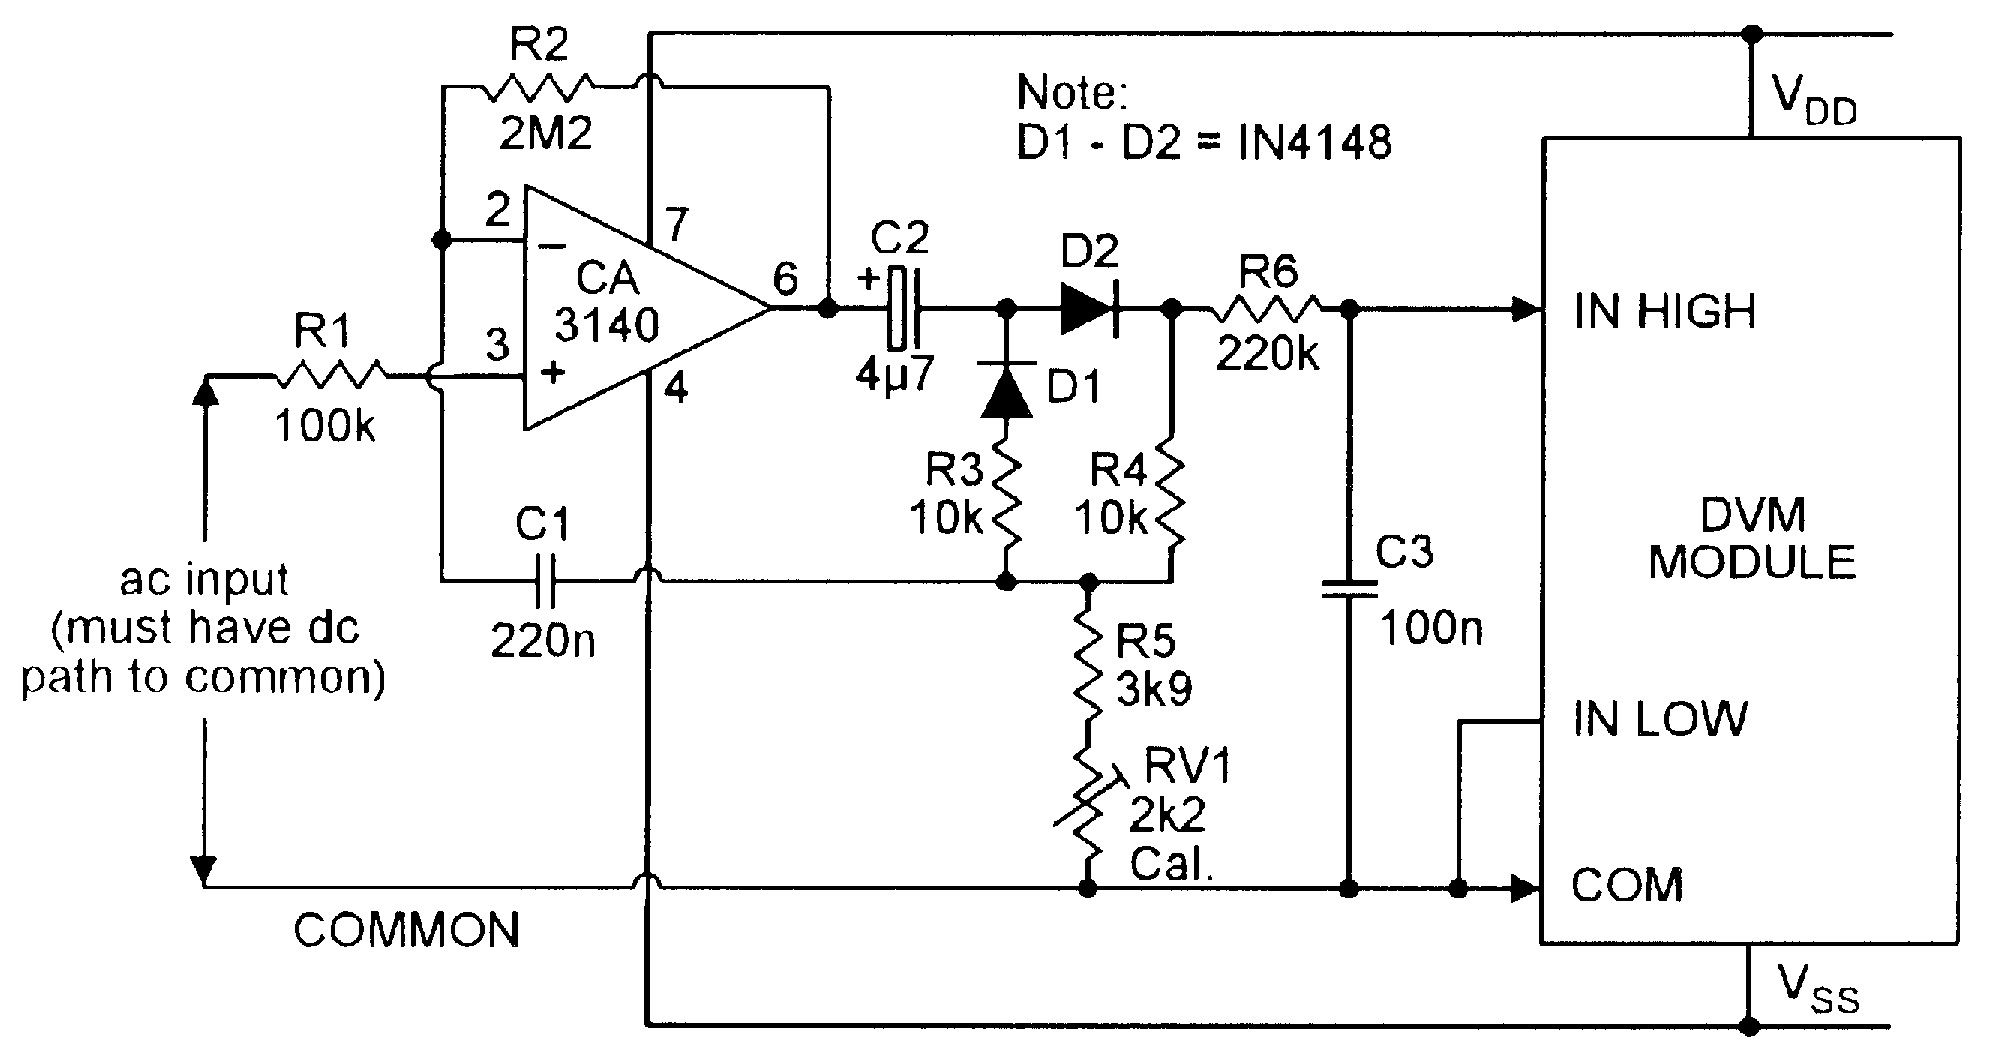 hight resolution of acdc converter circuit diagram electronic circuit diagrams wiring ac dc converter for use with dvm module